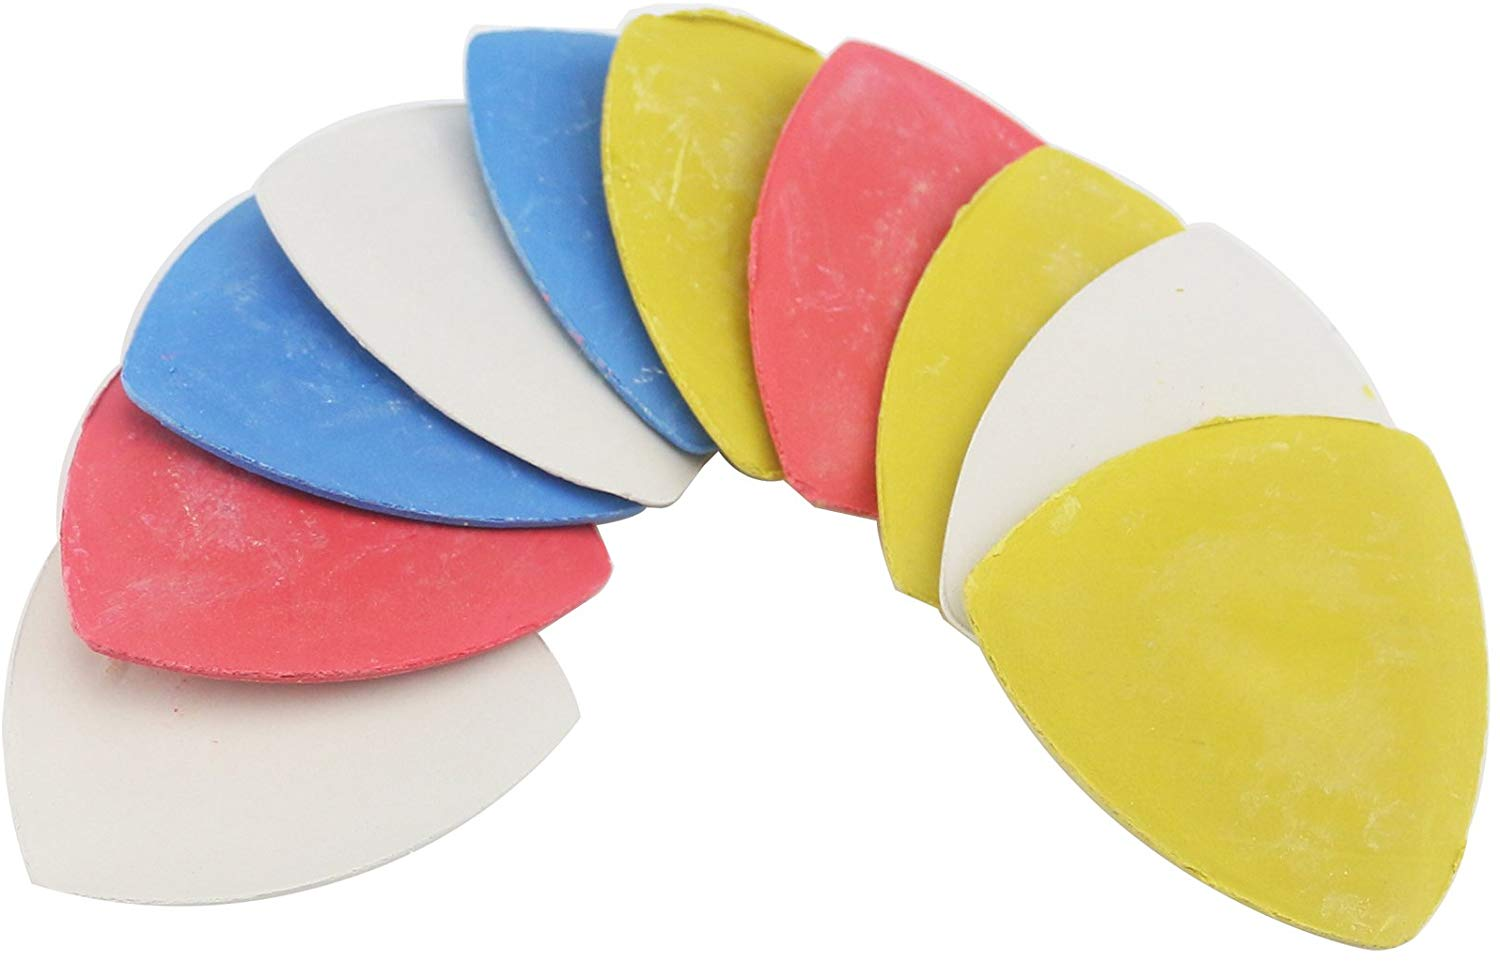 Mollensiuer Professional Tailor's Chalk - Chalks for Tailors